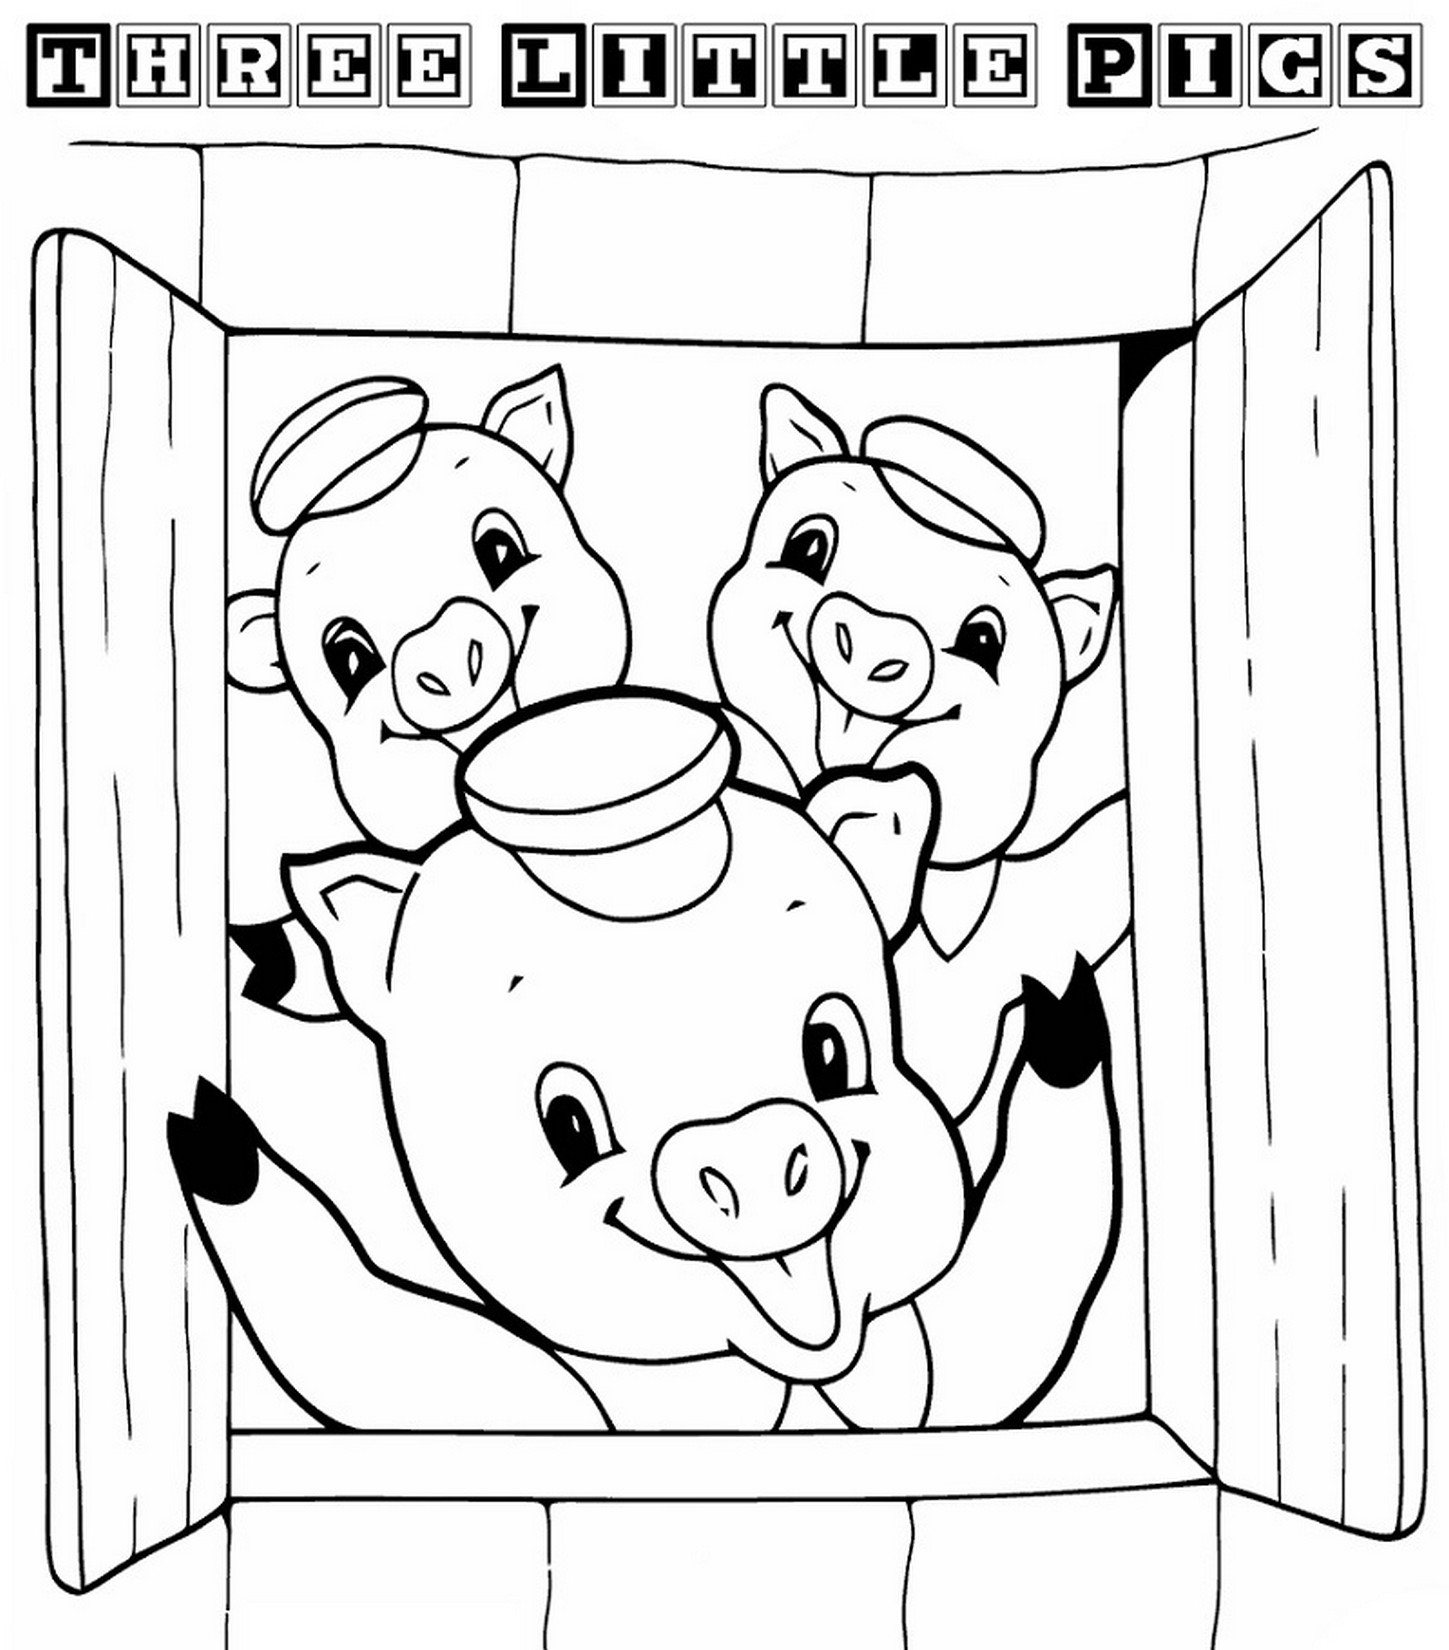 pig coloring pages for preschoolers - photo#9